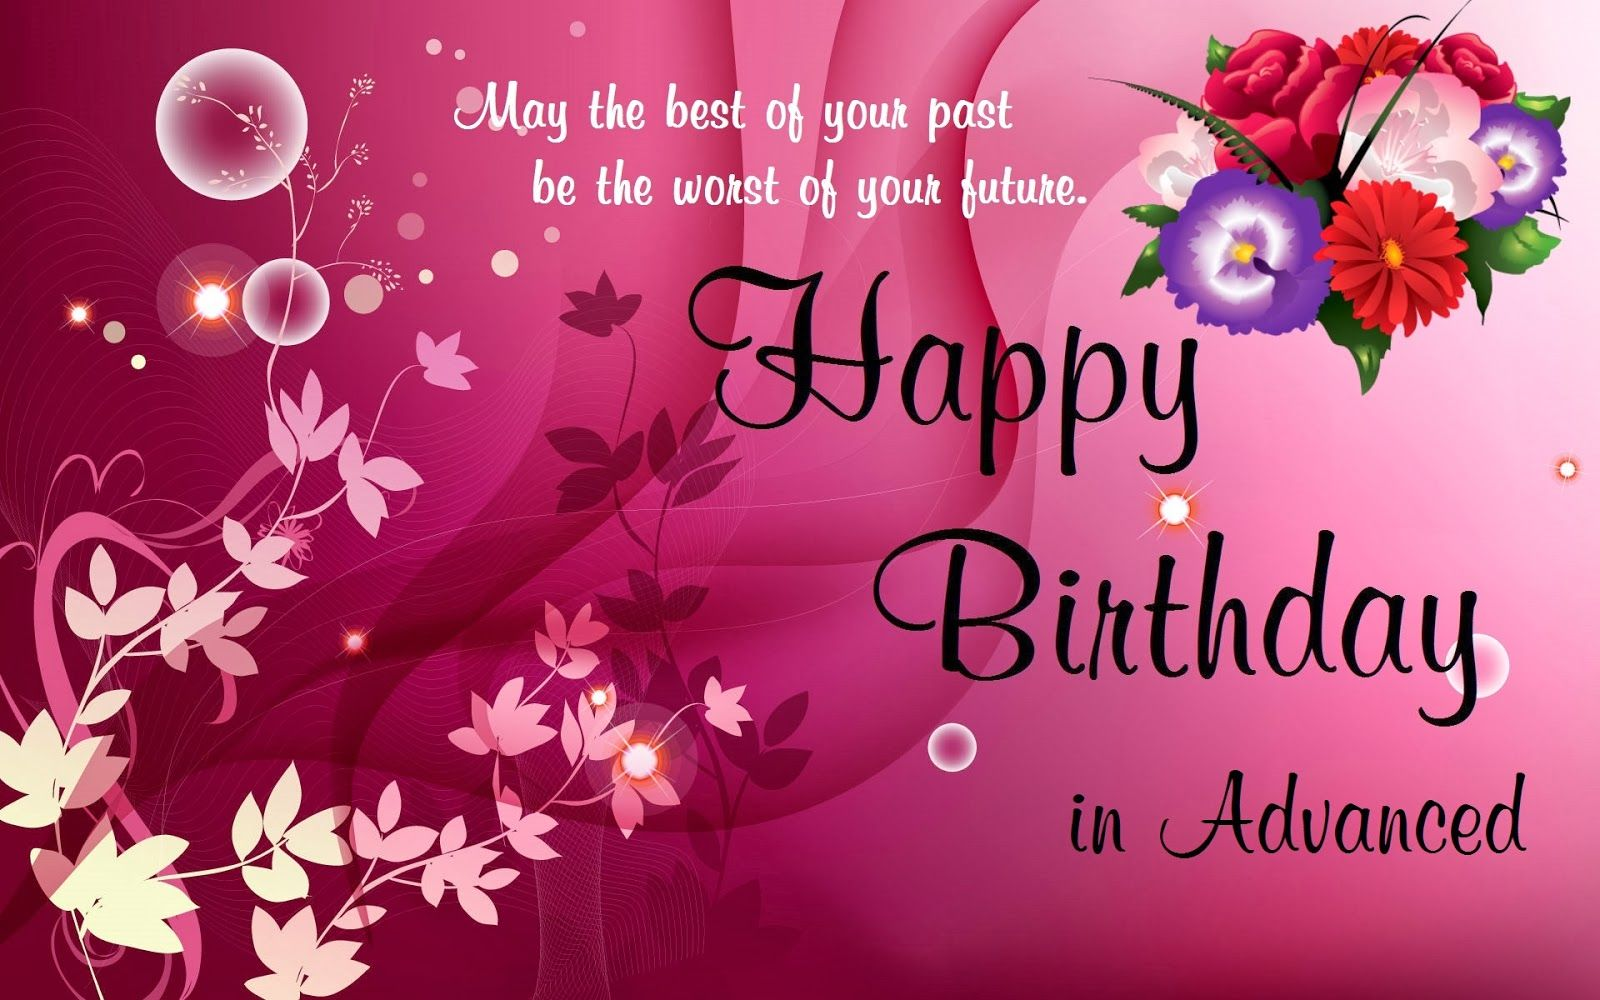 Best 5000 Happy Birthday Wishes Images Quotes Messages Greetings Cards Pict Advance Happy Birthday Happy Birthday Wishes Cards Advance Happy Birthday Wishes